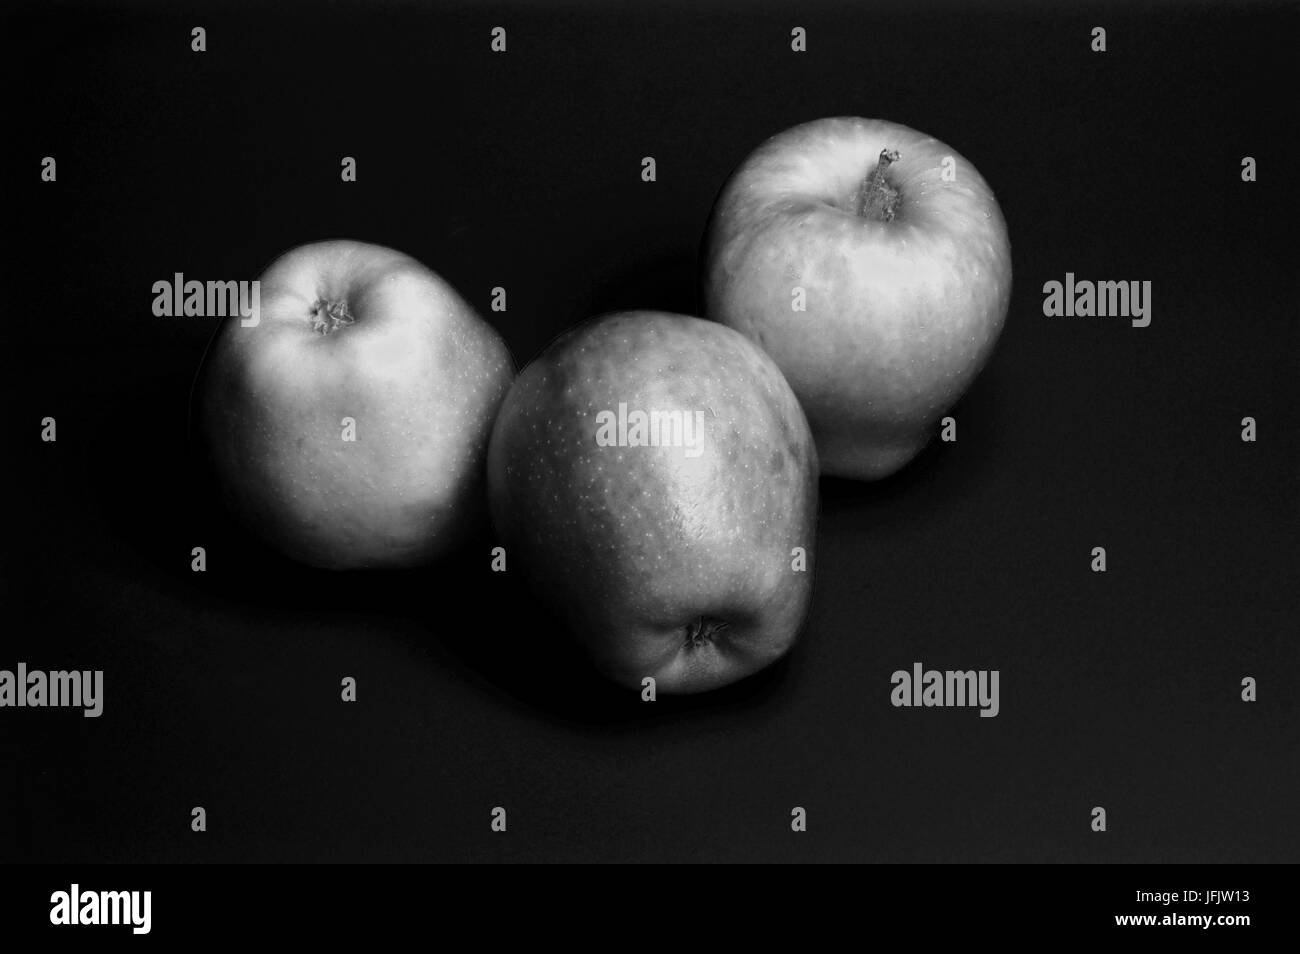 three apples in black and white, fruot - Stock Image